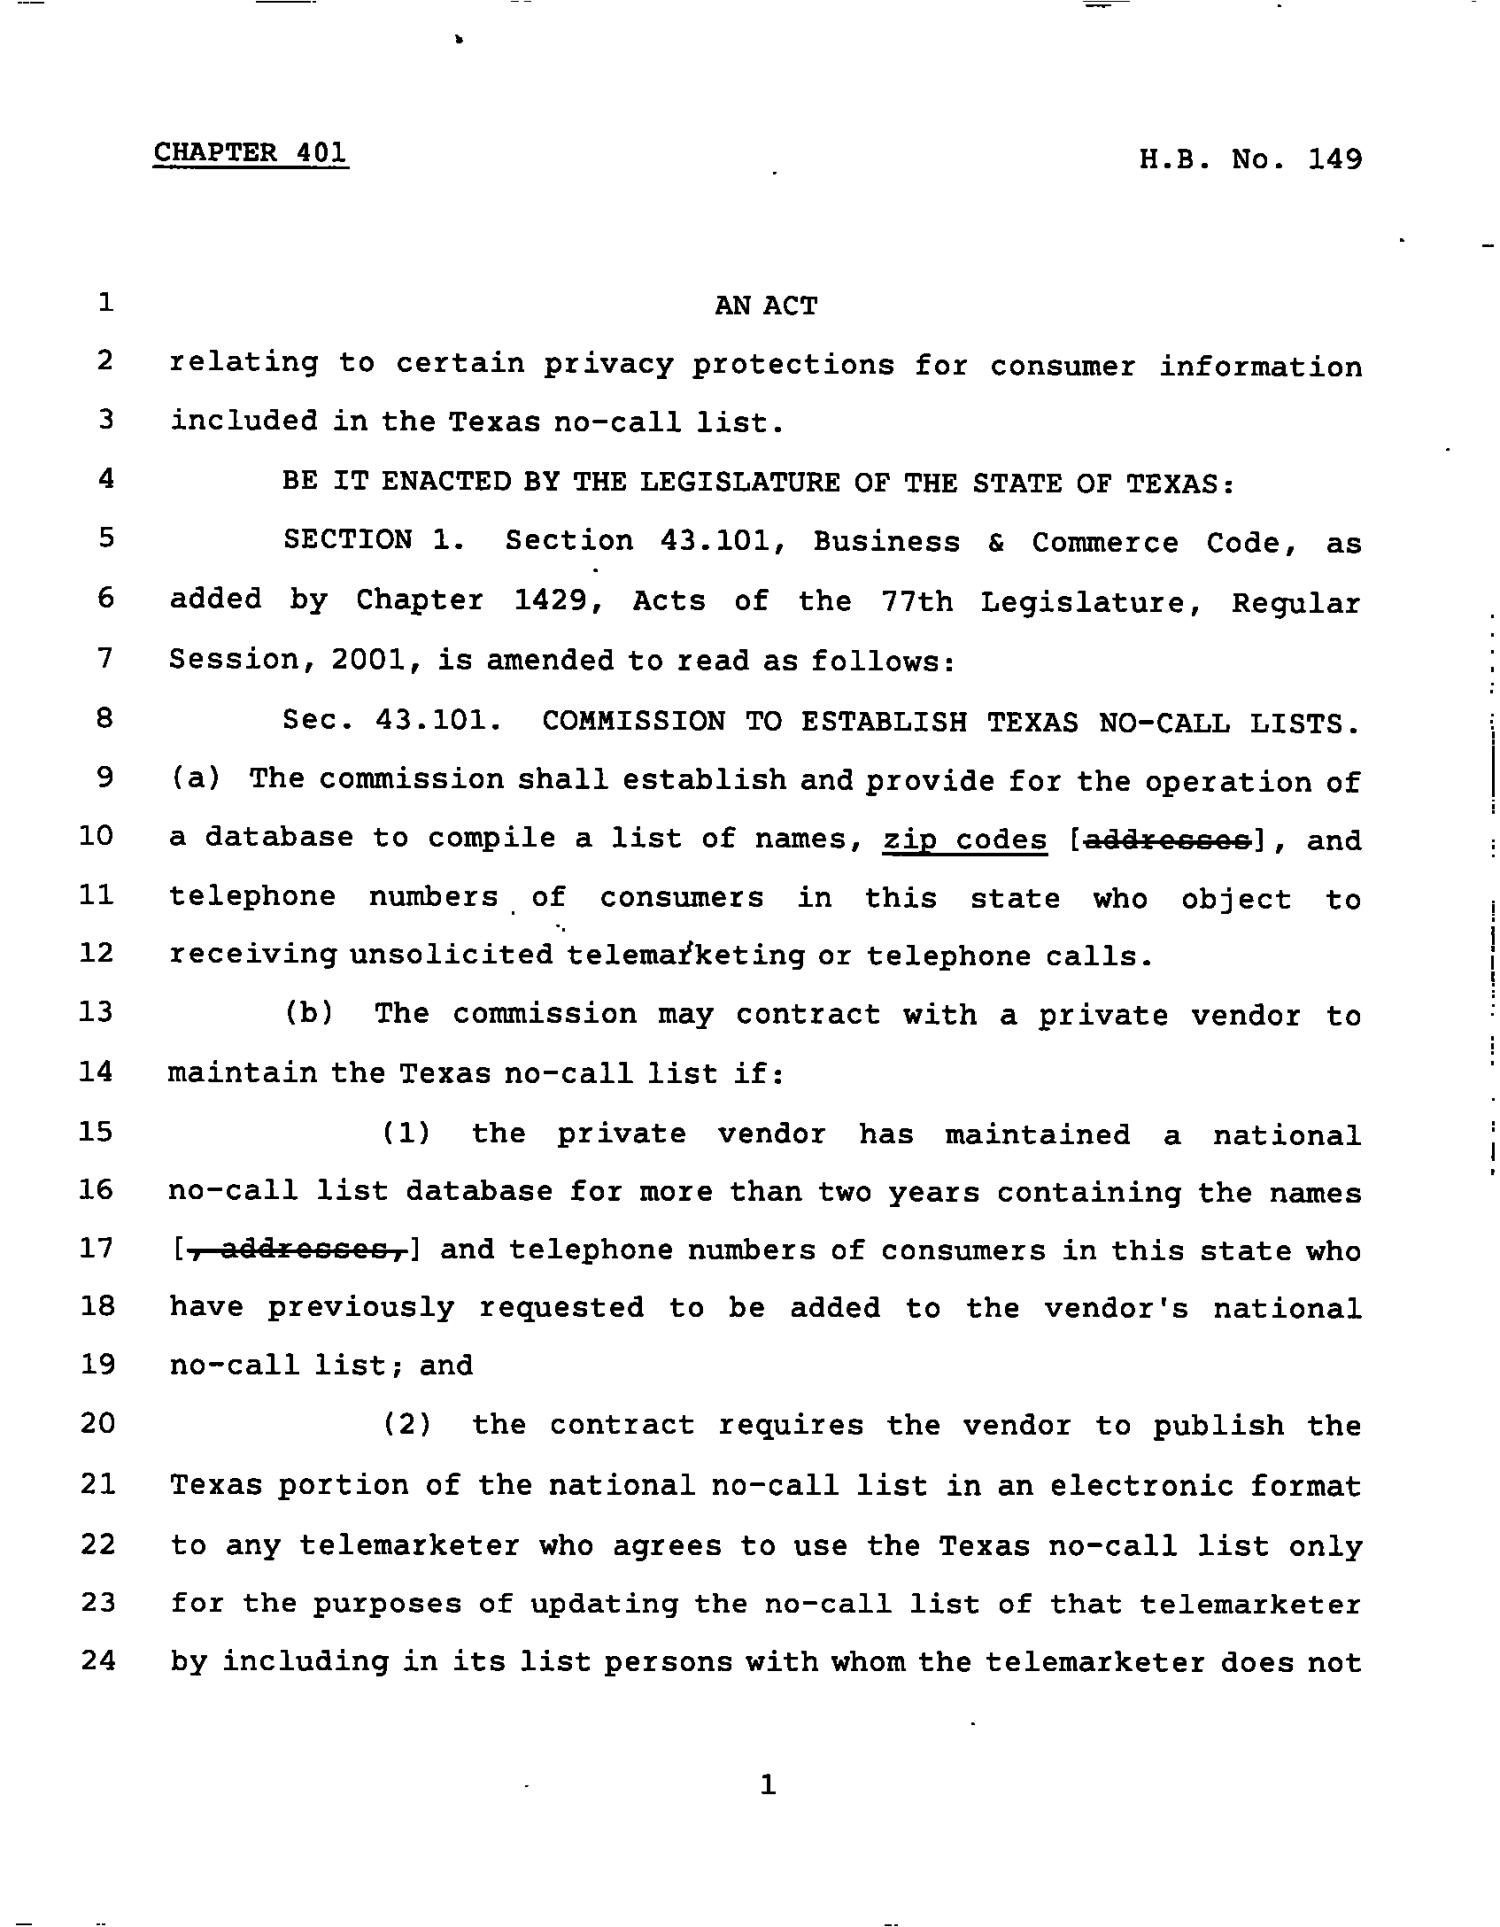 78th Texas Legislature, Regular Session, House Bill 149, Chapter 401                                                                                                      [Sequence #]: 1 of 4